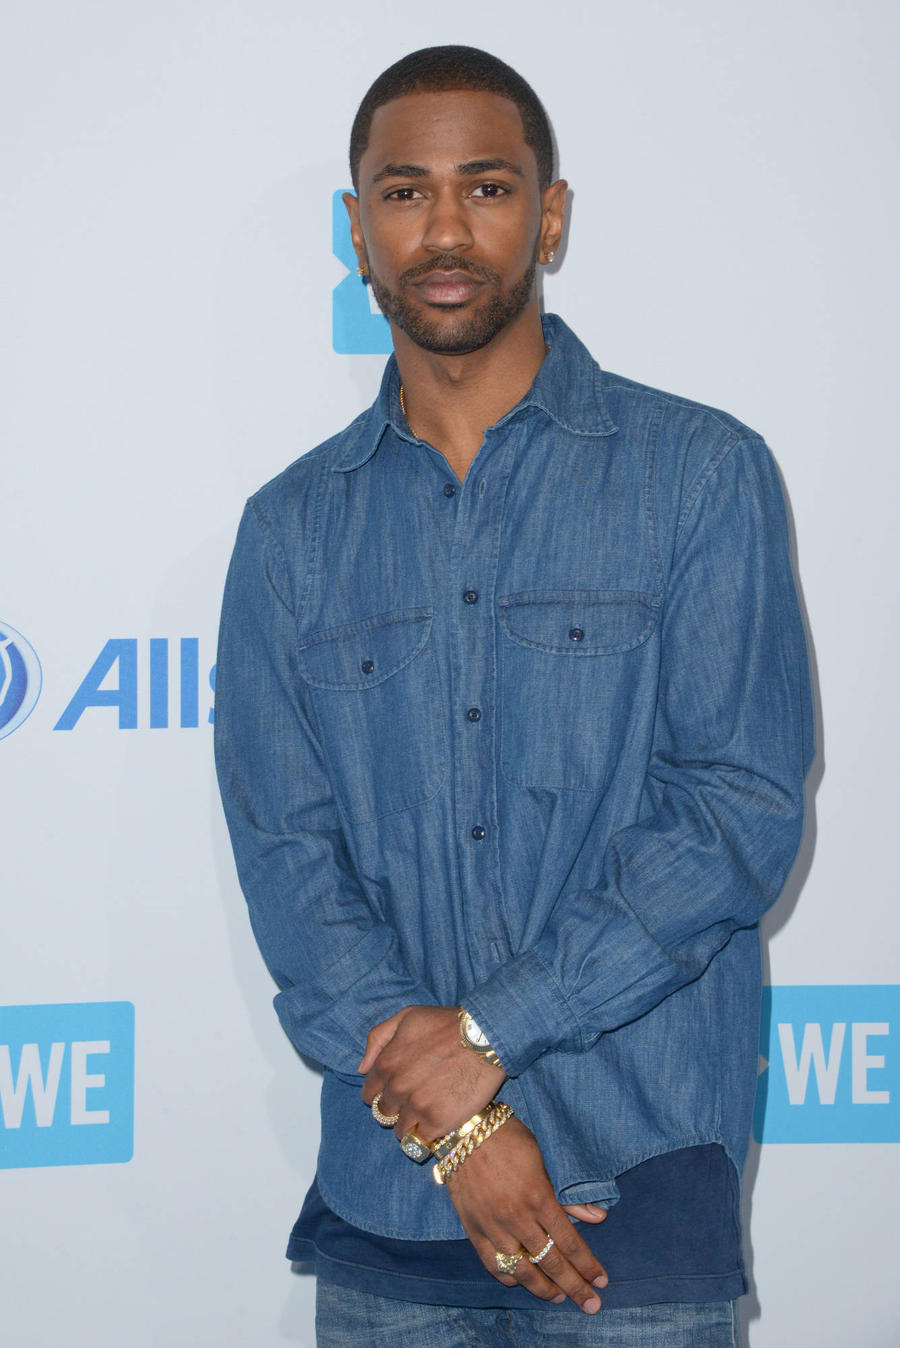 Big Sean Donates Funds To Homeless Youth Programme